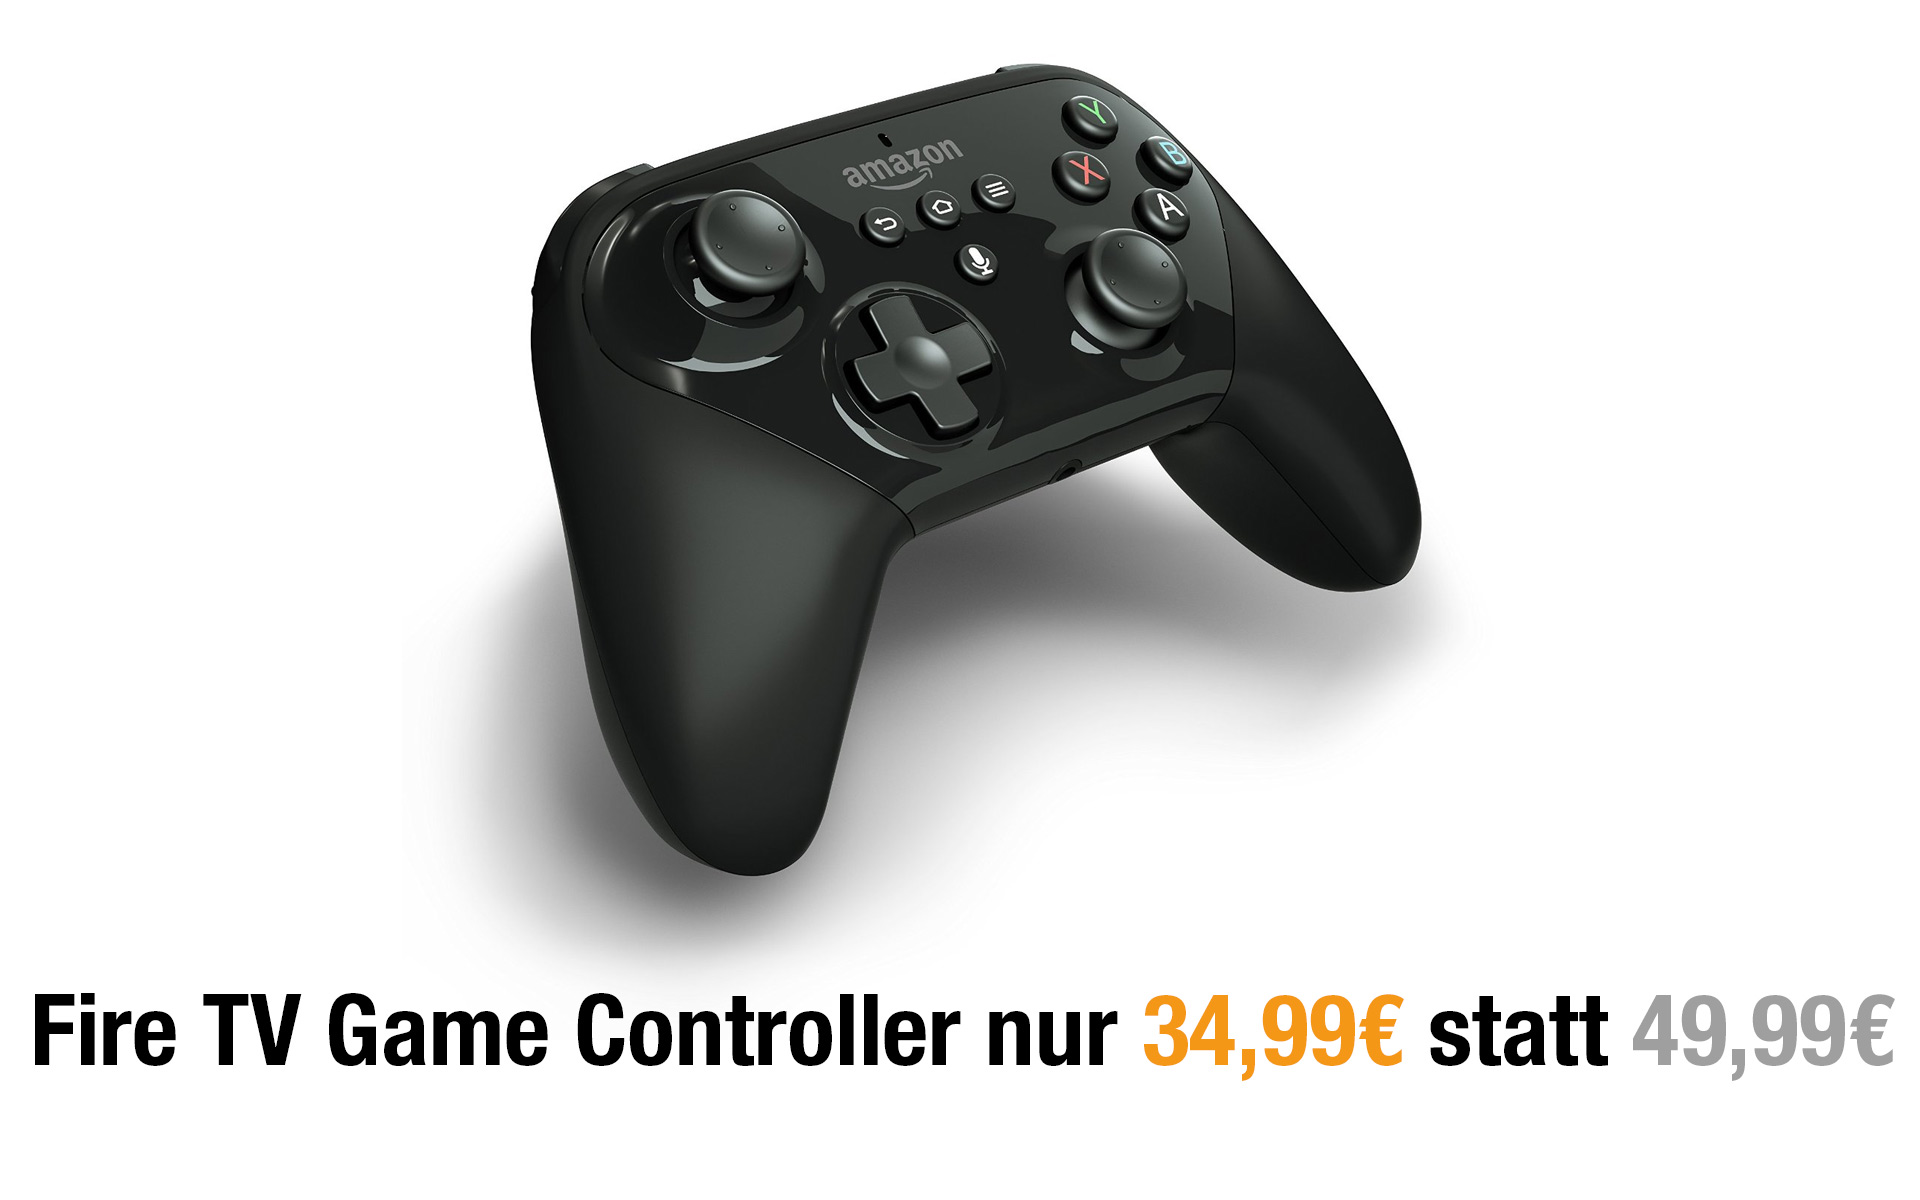 Deal: Amazon Fire TV Gamecontroller momentan reduziert!